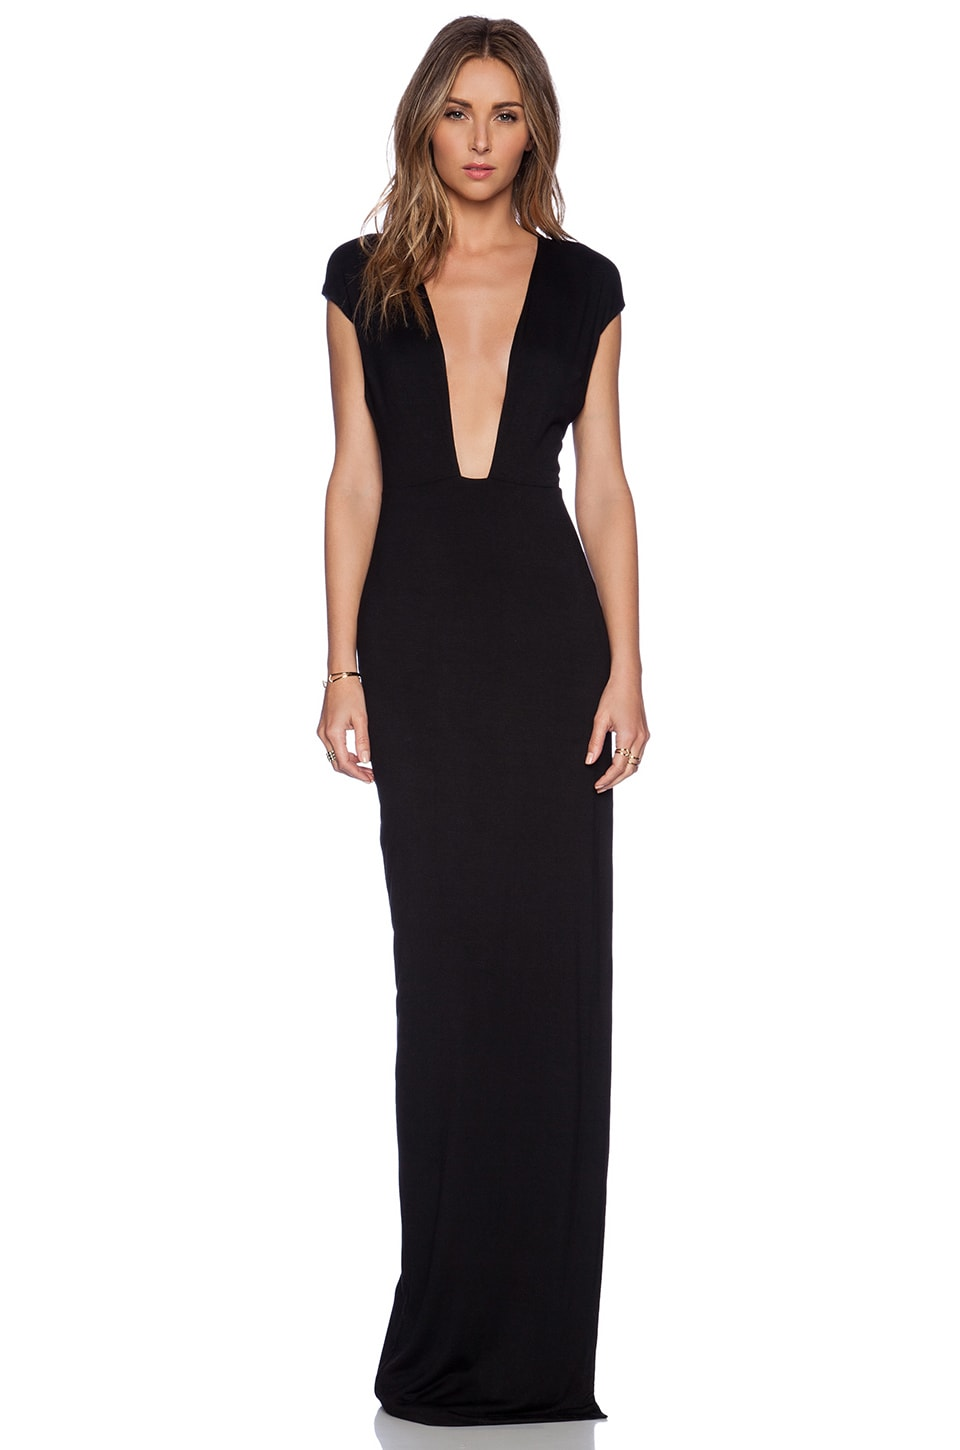 AQ/AQ Crave Maxi Dress in Black